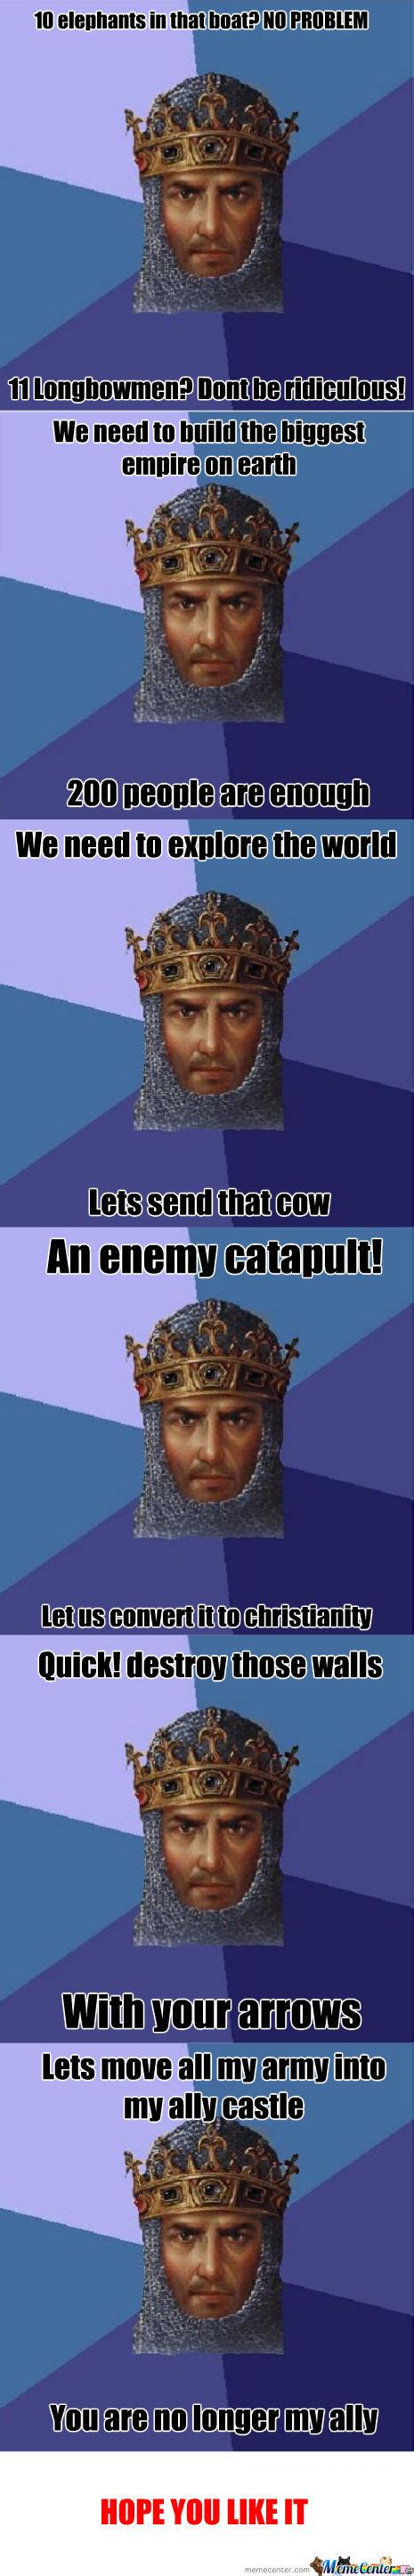 Age Of Empires Meme - age of empires meme recopilation by francisco9622 meme